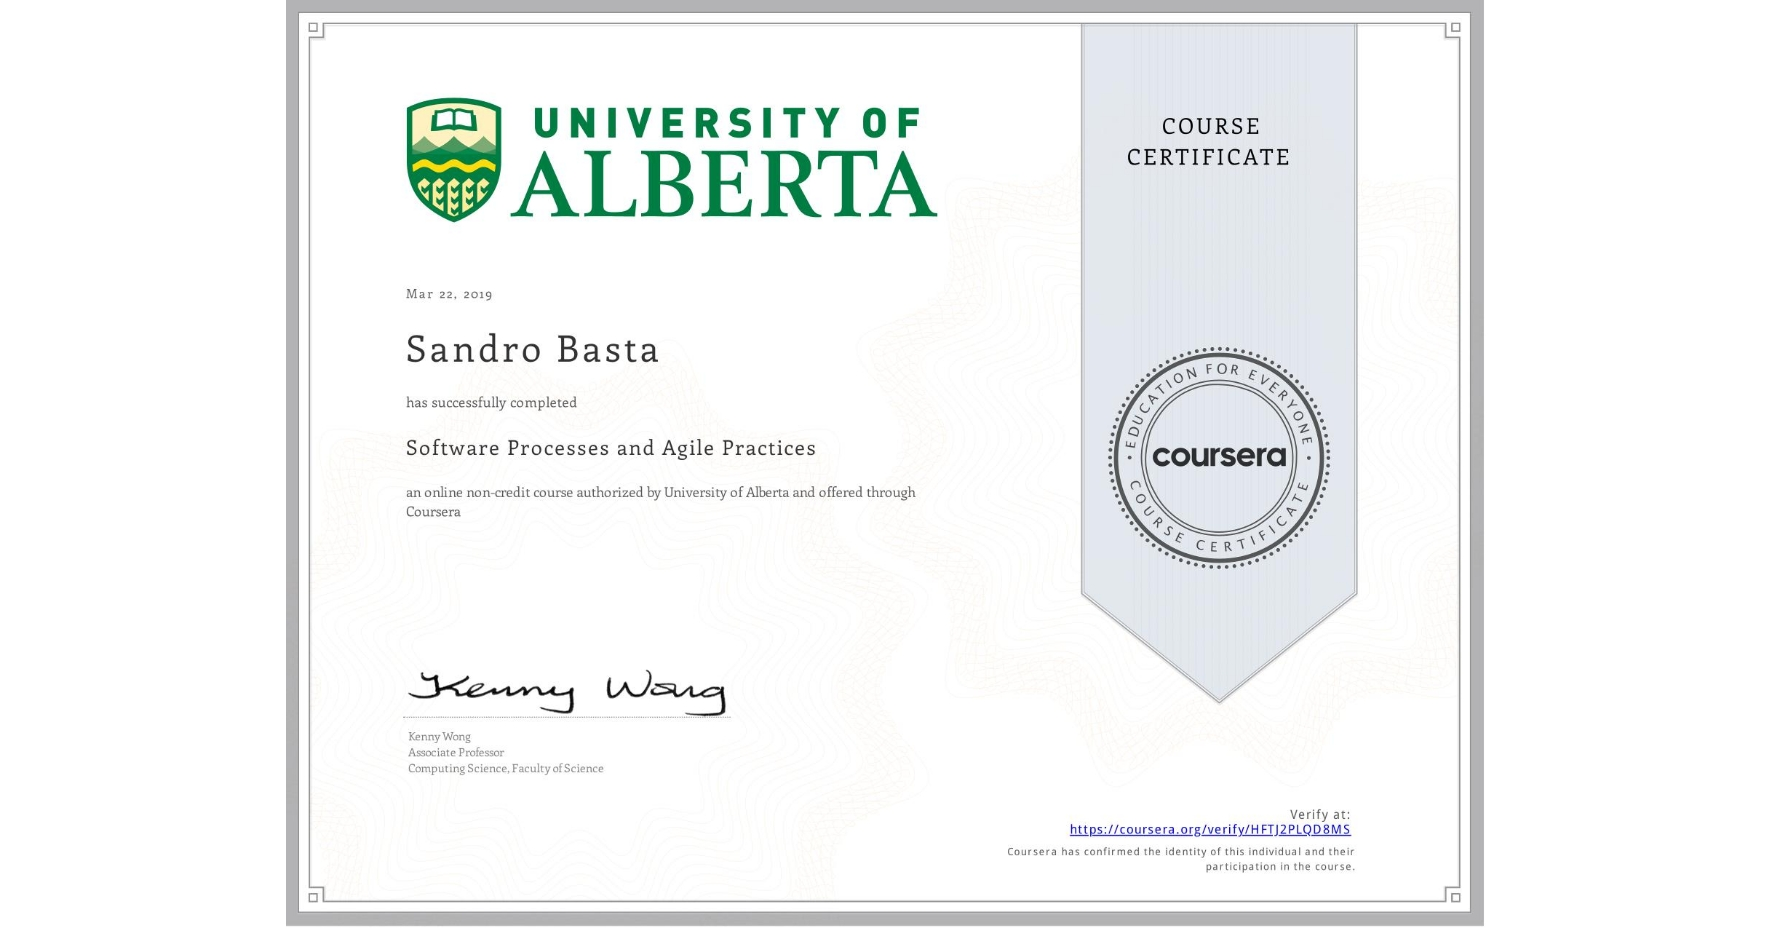 View certificate for Sandro Basta, Software Processes and Agile Practices, an online non-credit course authorized by University of Alberta and offered through Coursera